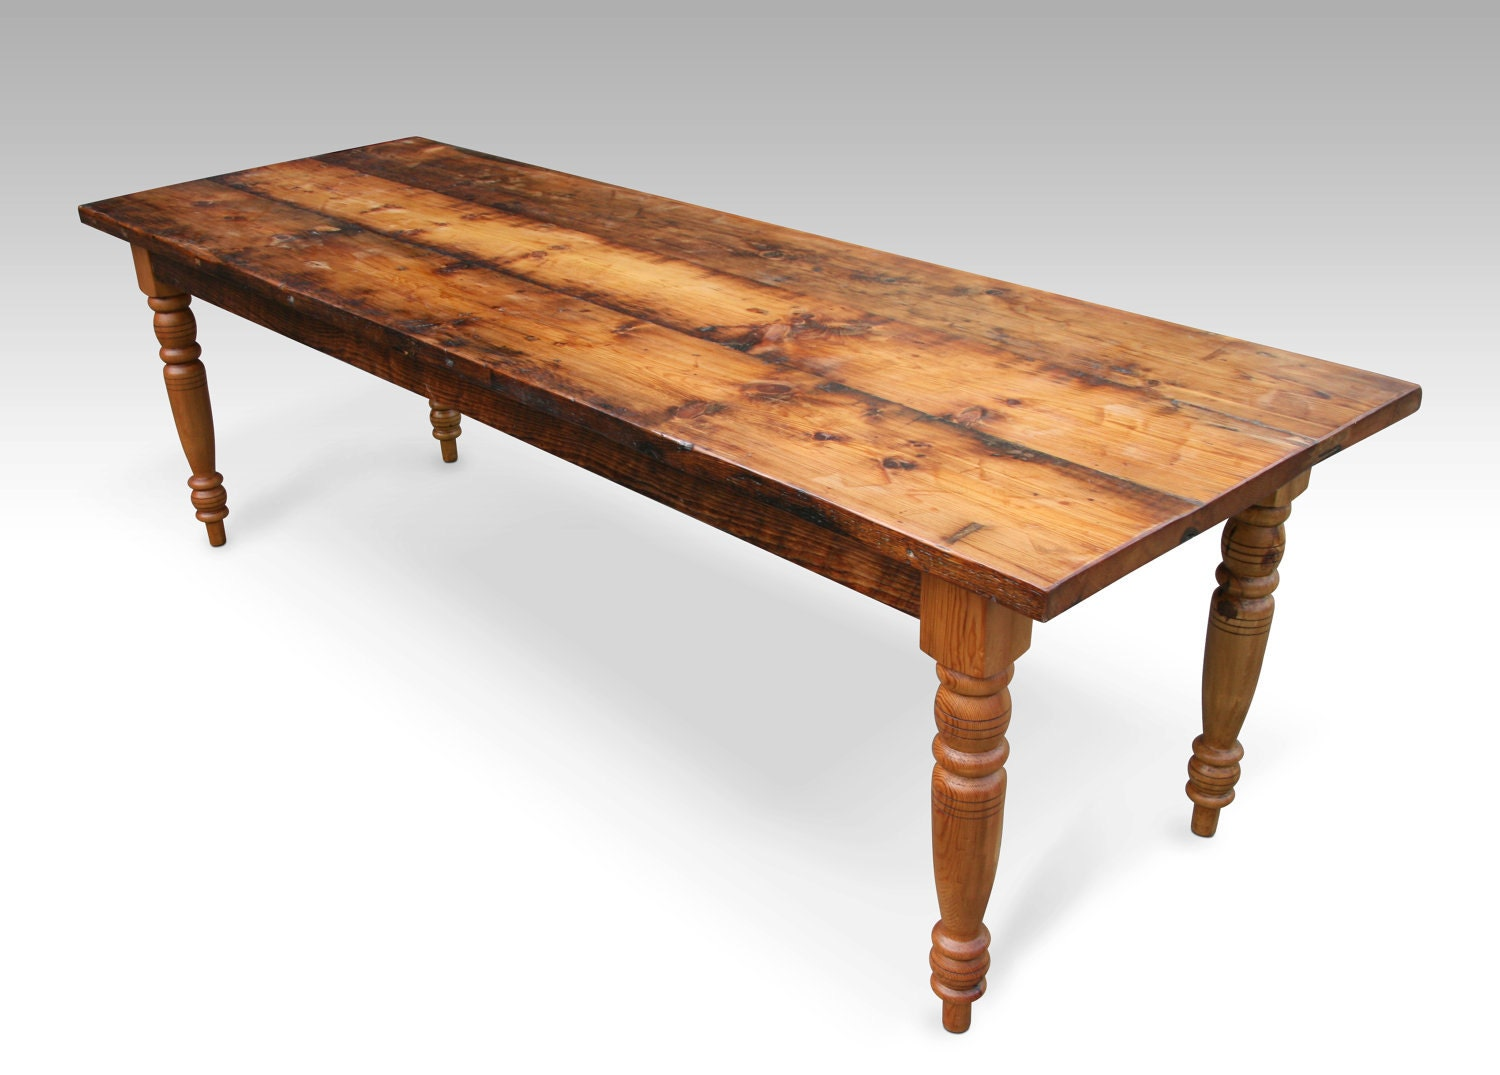 Antique farm dining table -  Zoom